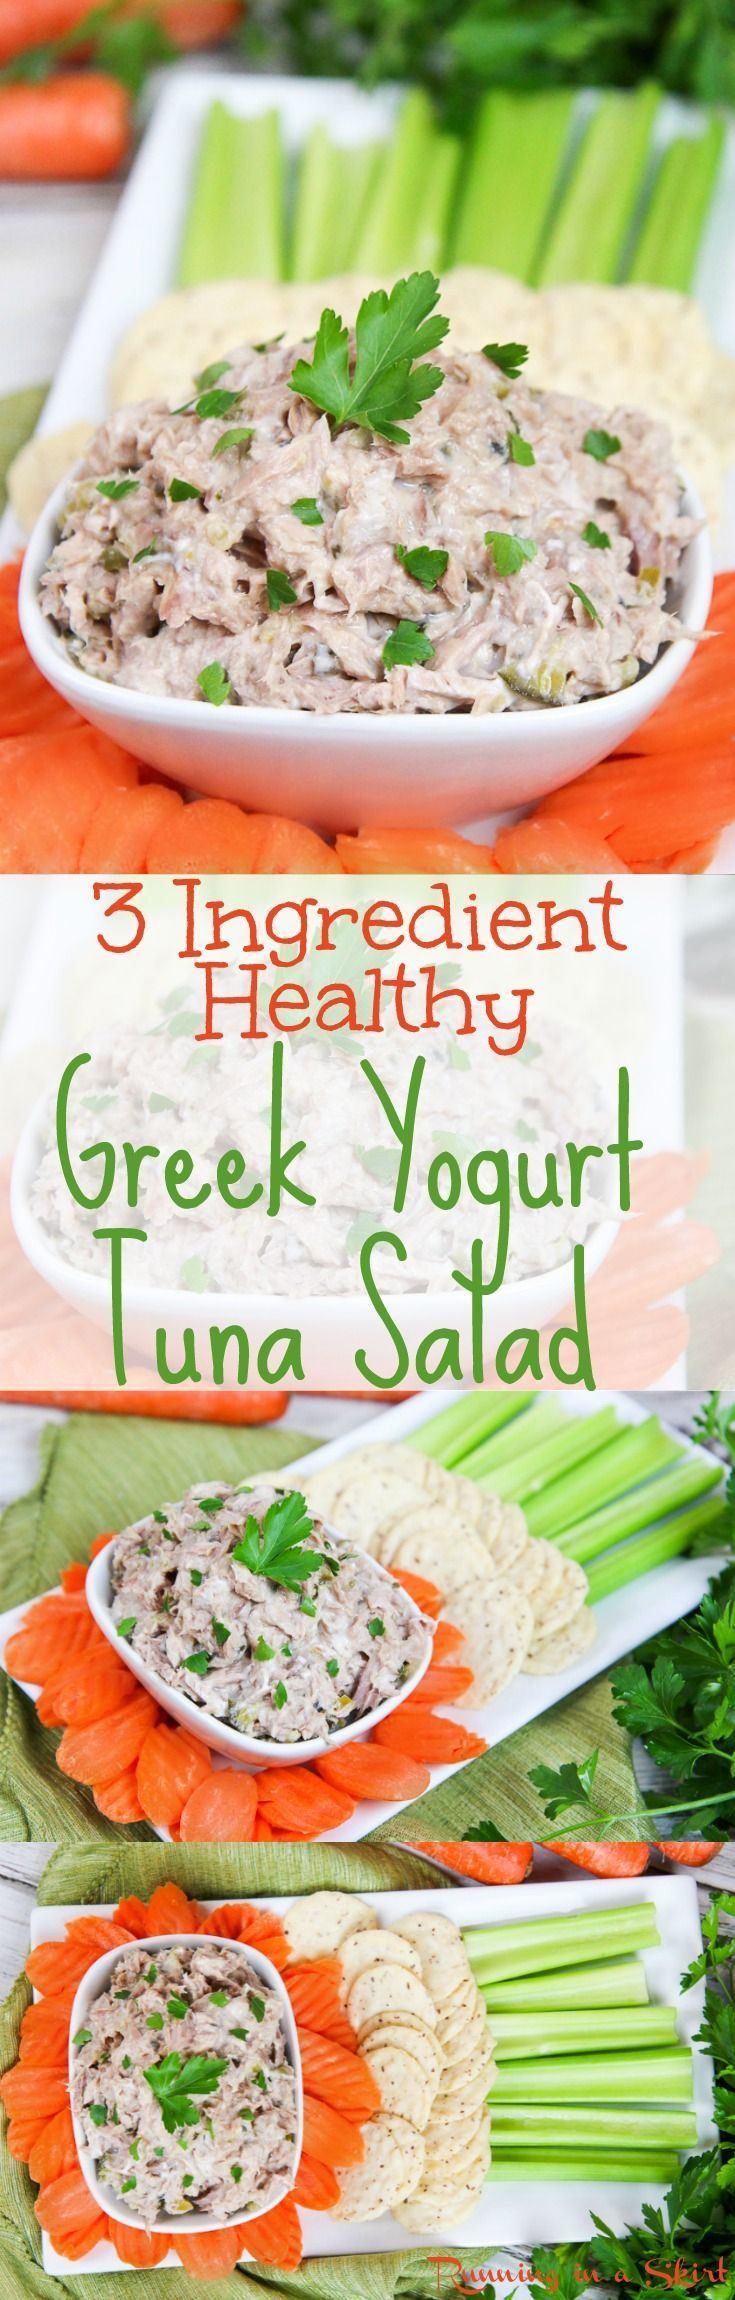 Healthy 3 Ingredient Greek Yogurt Tuna Salad recipe.  A clean eating, fast meal or snack.  An easy twist on the Southern favorite with greek yogurt, with relish and no mayo.  Diet friendly! / Running in a Skirt